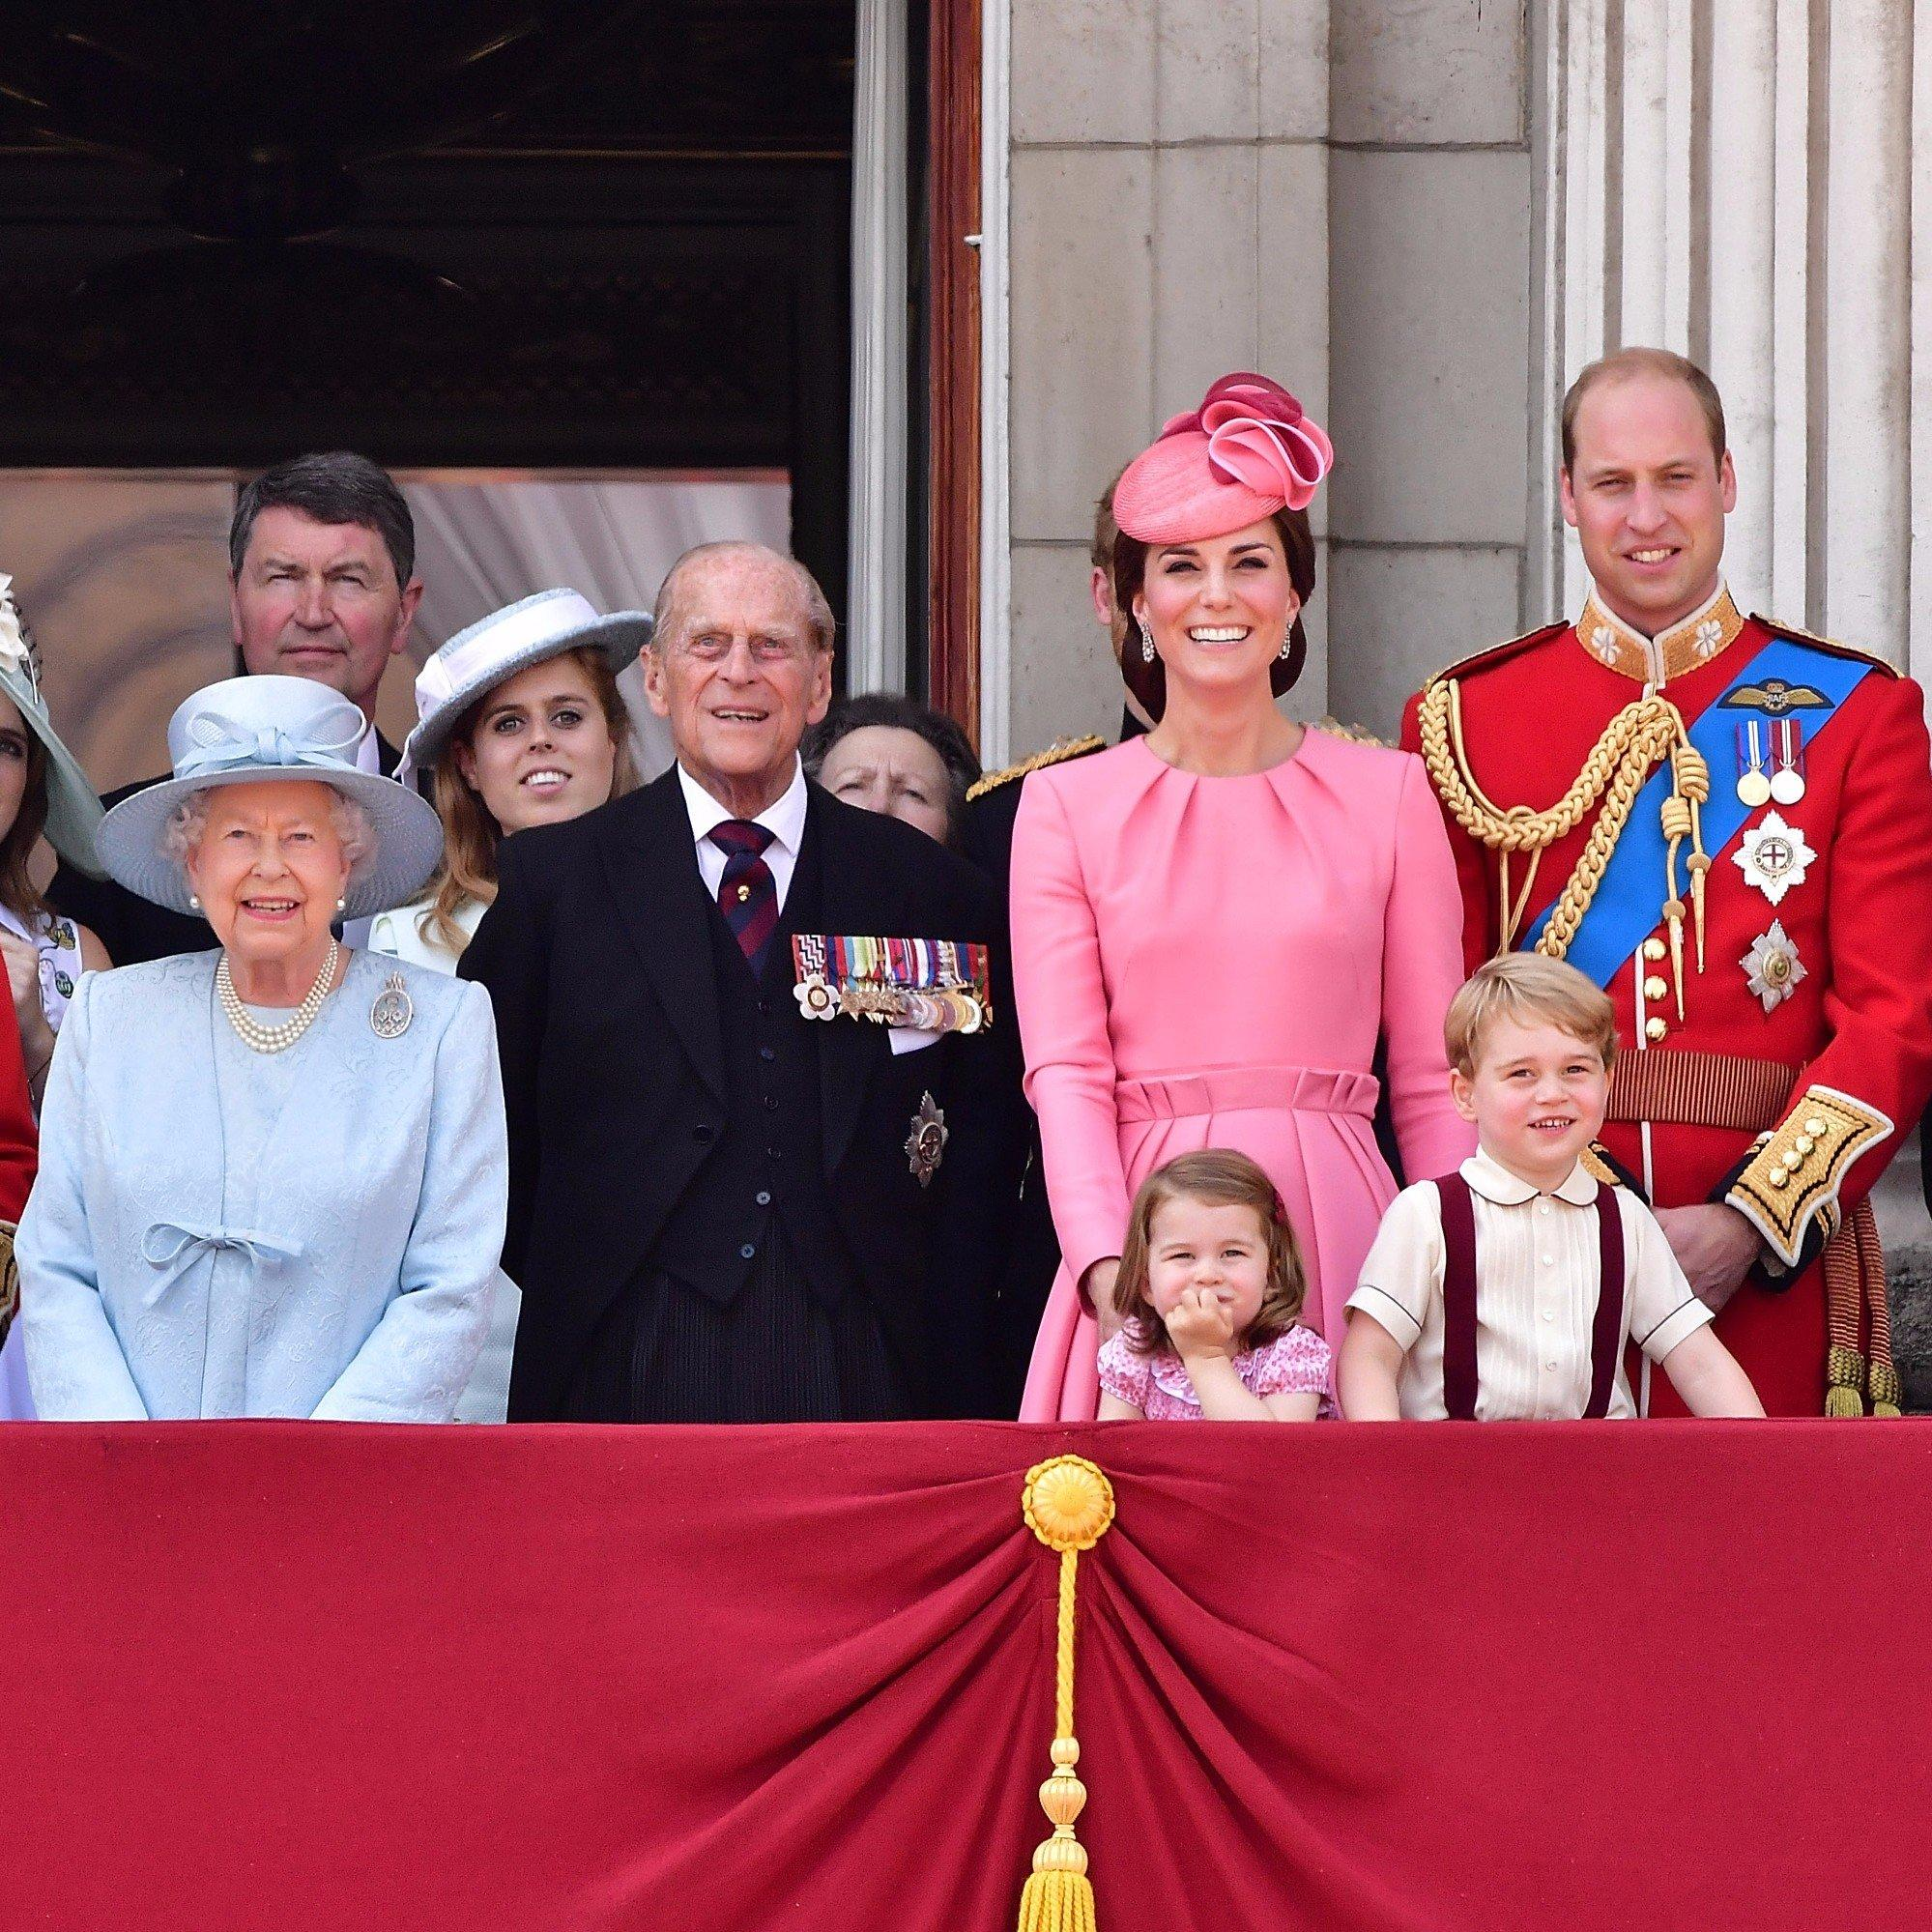 Does the Royal Family Have a Last Name?